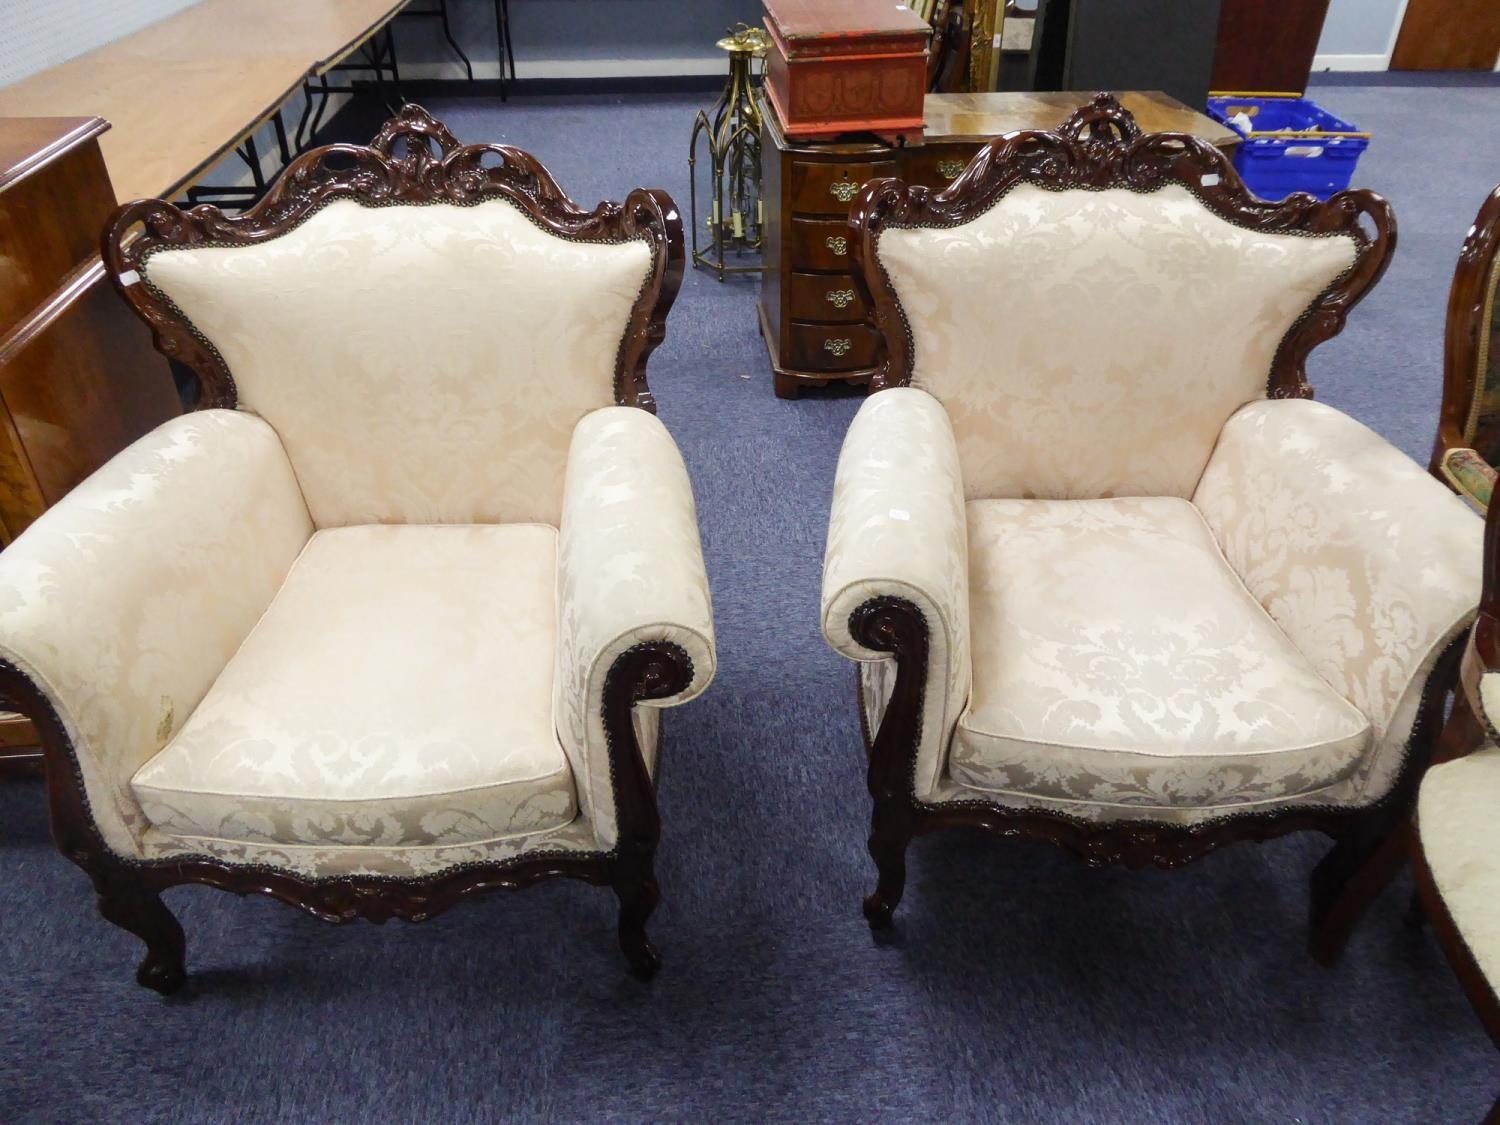 Lot 95 - A NINETEENTH CENTURY STYLE THREE PIECE LOUNGE SUITE WITH ORNATE FRAMEWORK, COVERED IN CREAM FLORAL